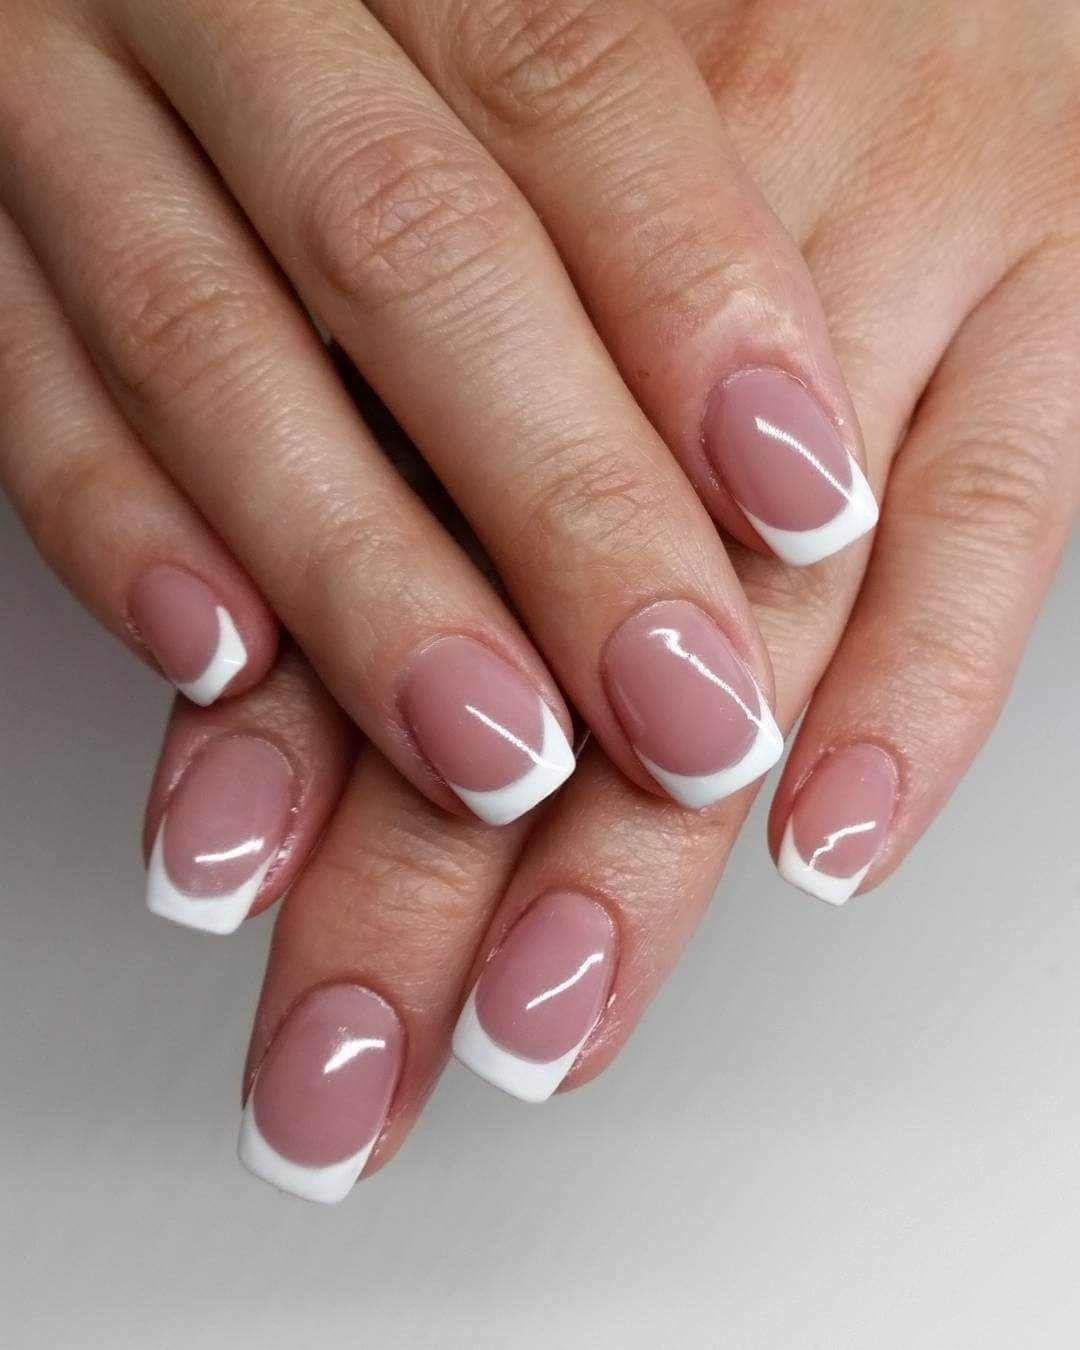 awesome french nails designs 2016 | Pinterest | French nails, Curved ...